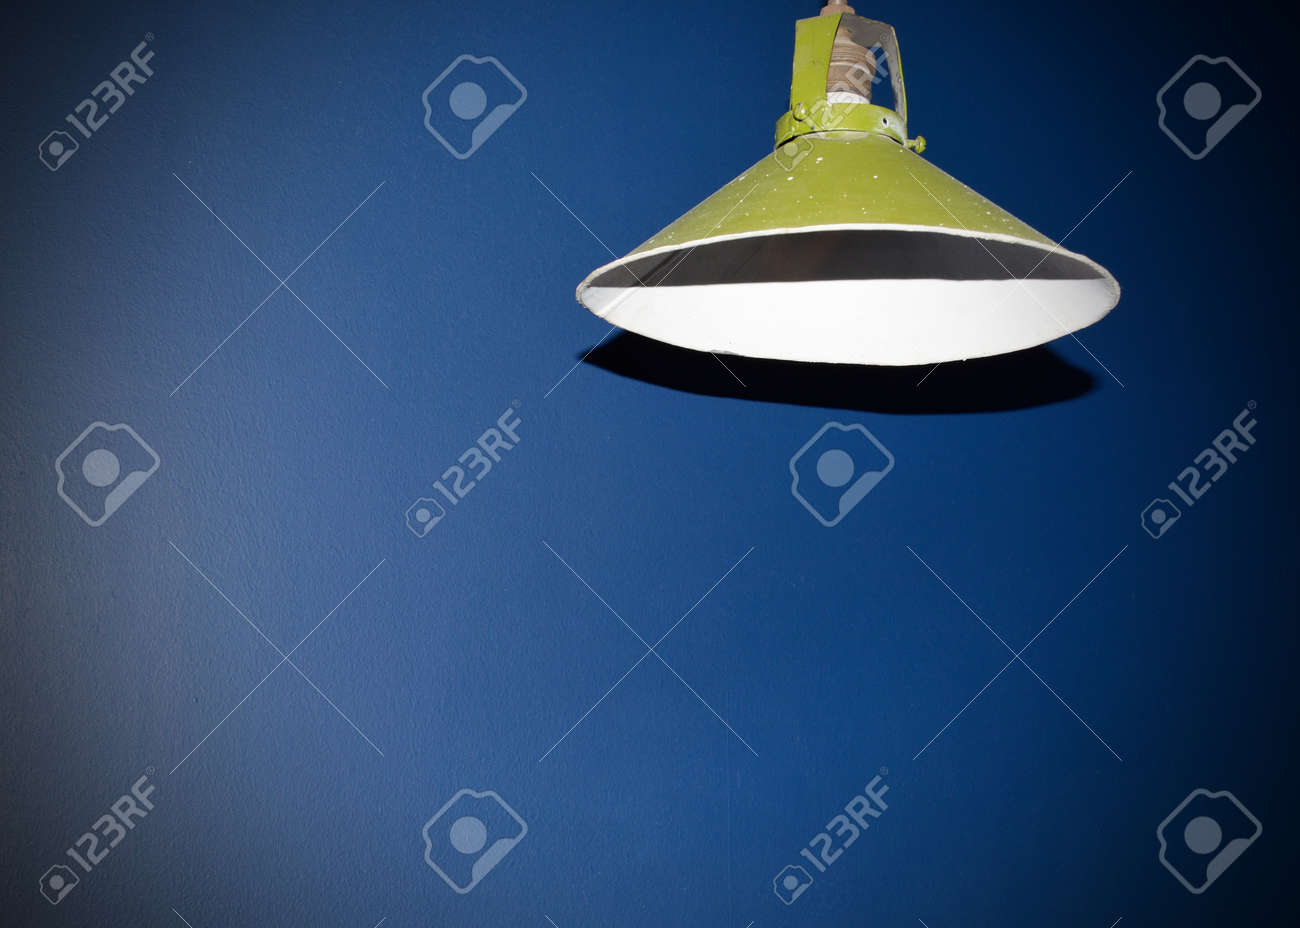 Round Green Lampshade hanging on the ceiling in the room. Stock Photo - 73494630